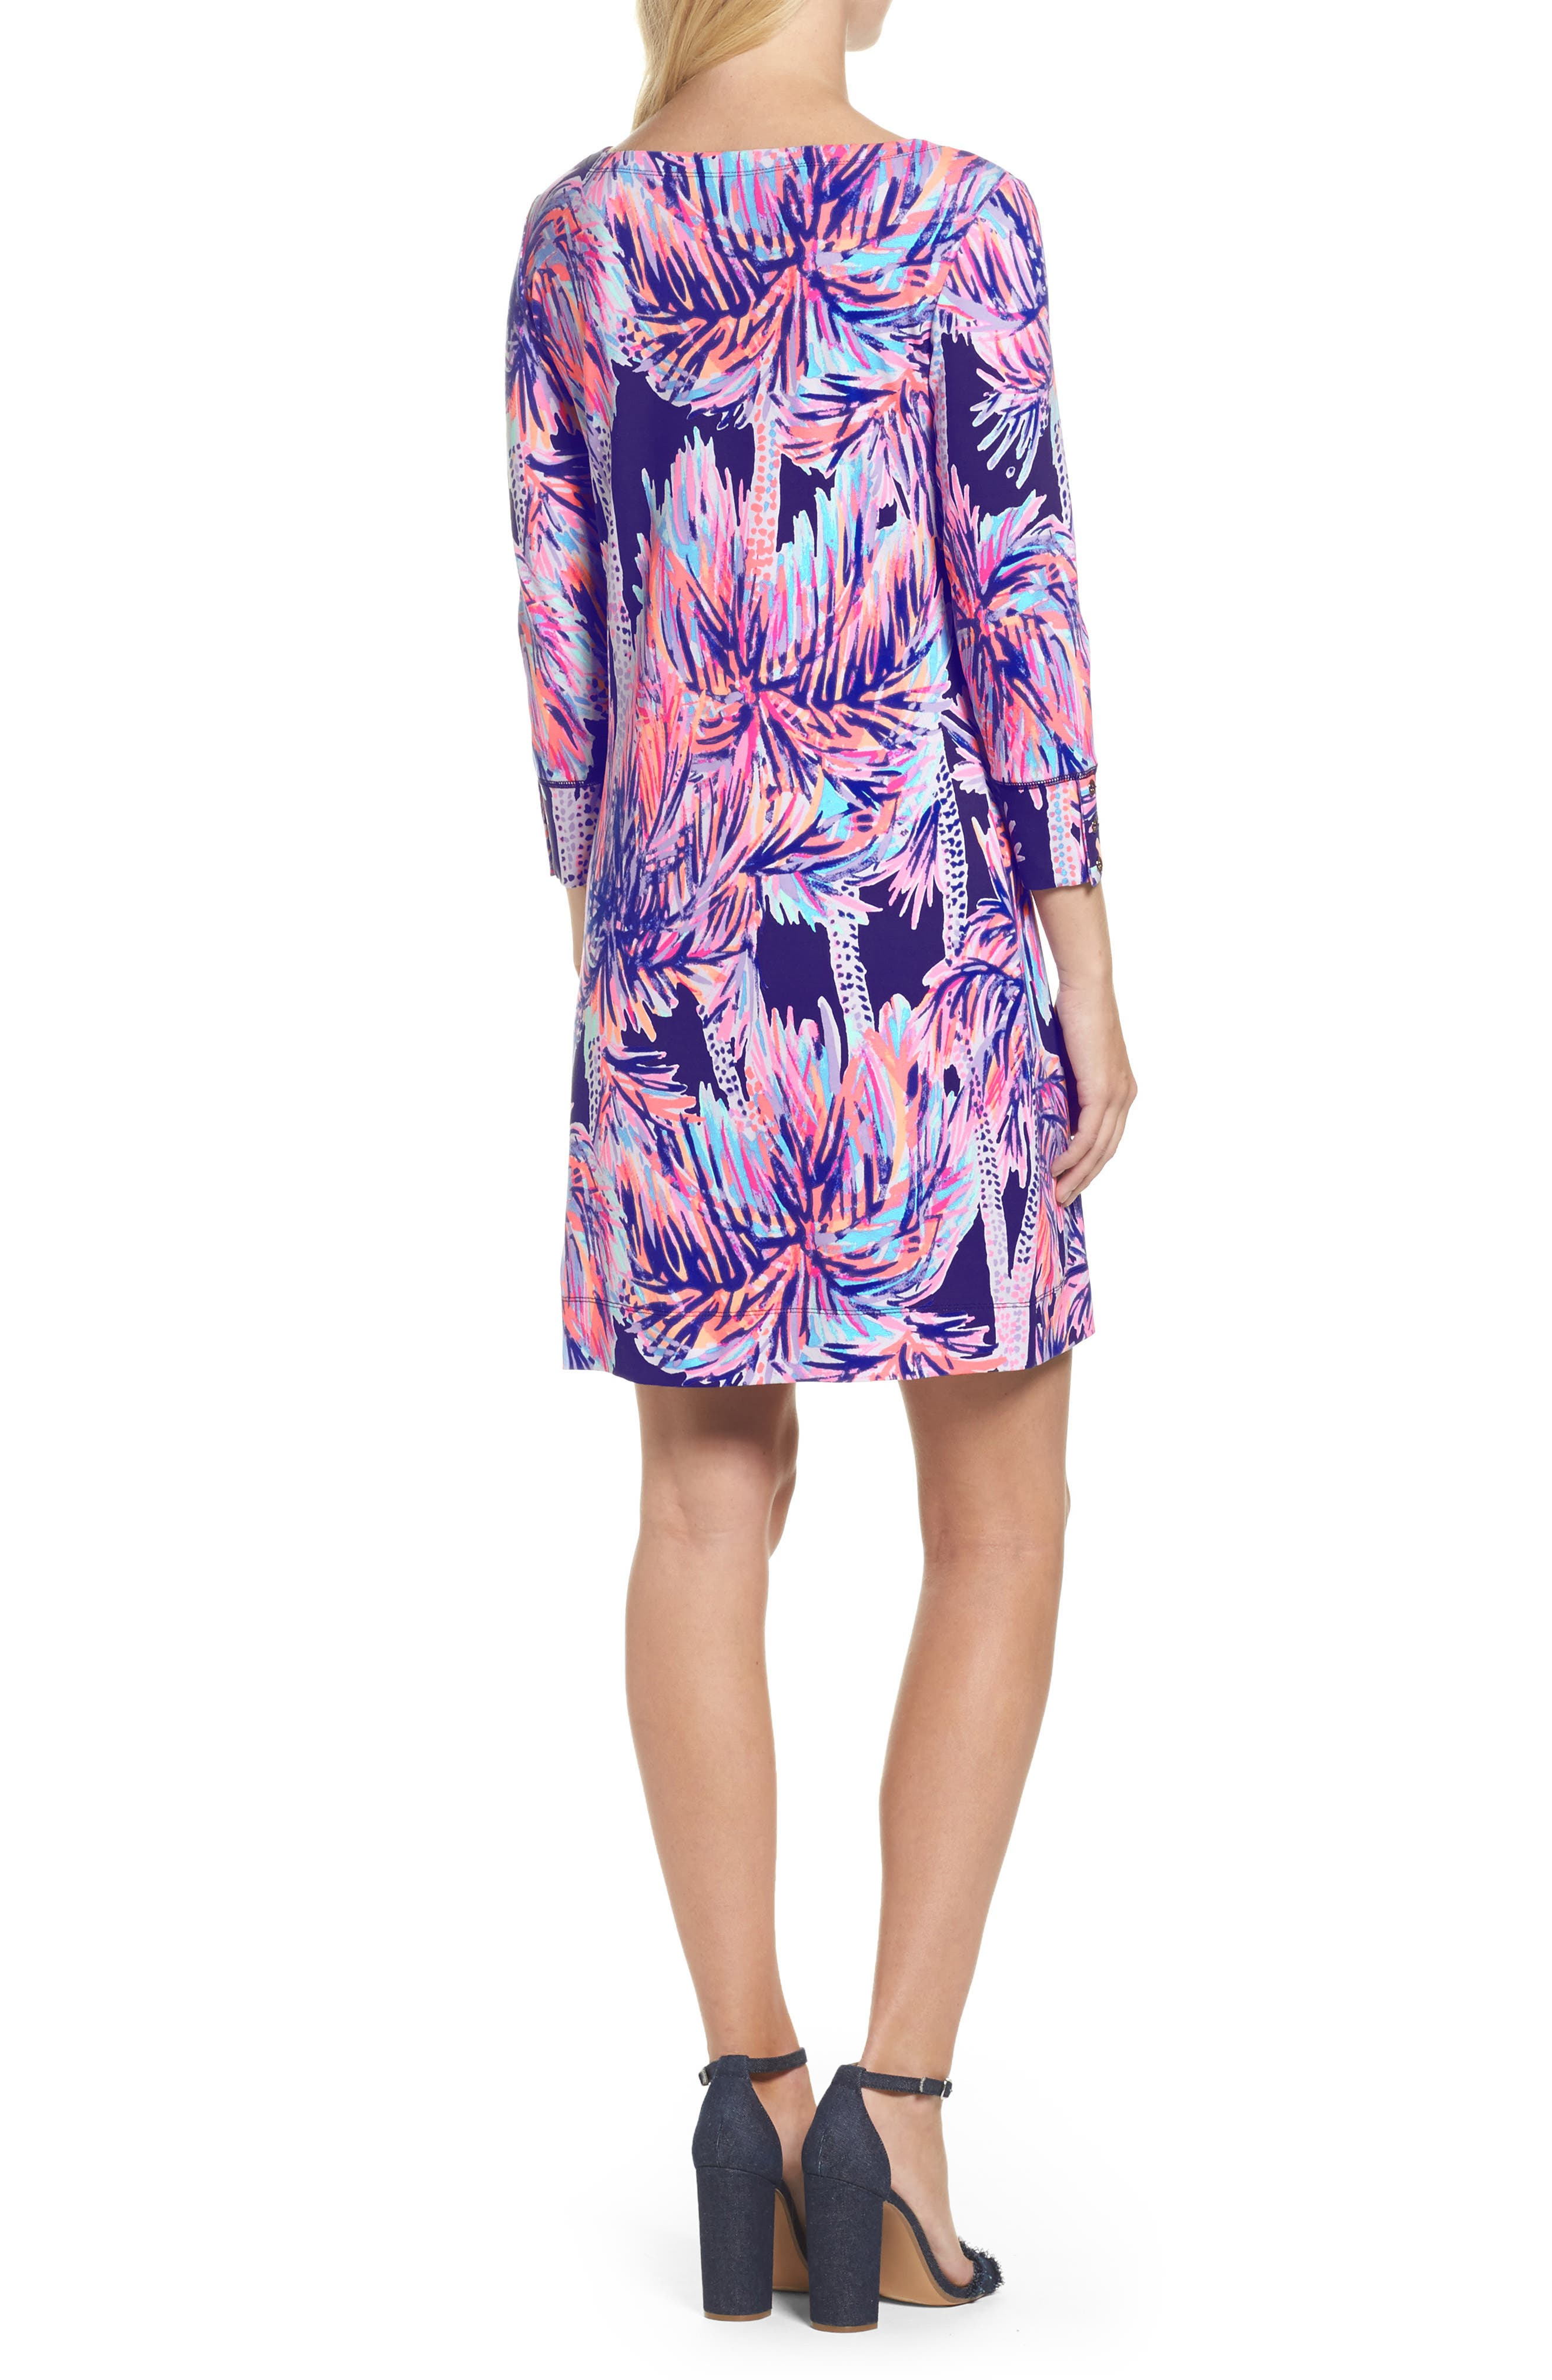 Sophie UPF 50+ Dress,                             Alternate thumbnail 2, color,                             Bright Navy Palms Up